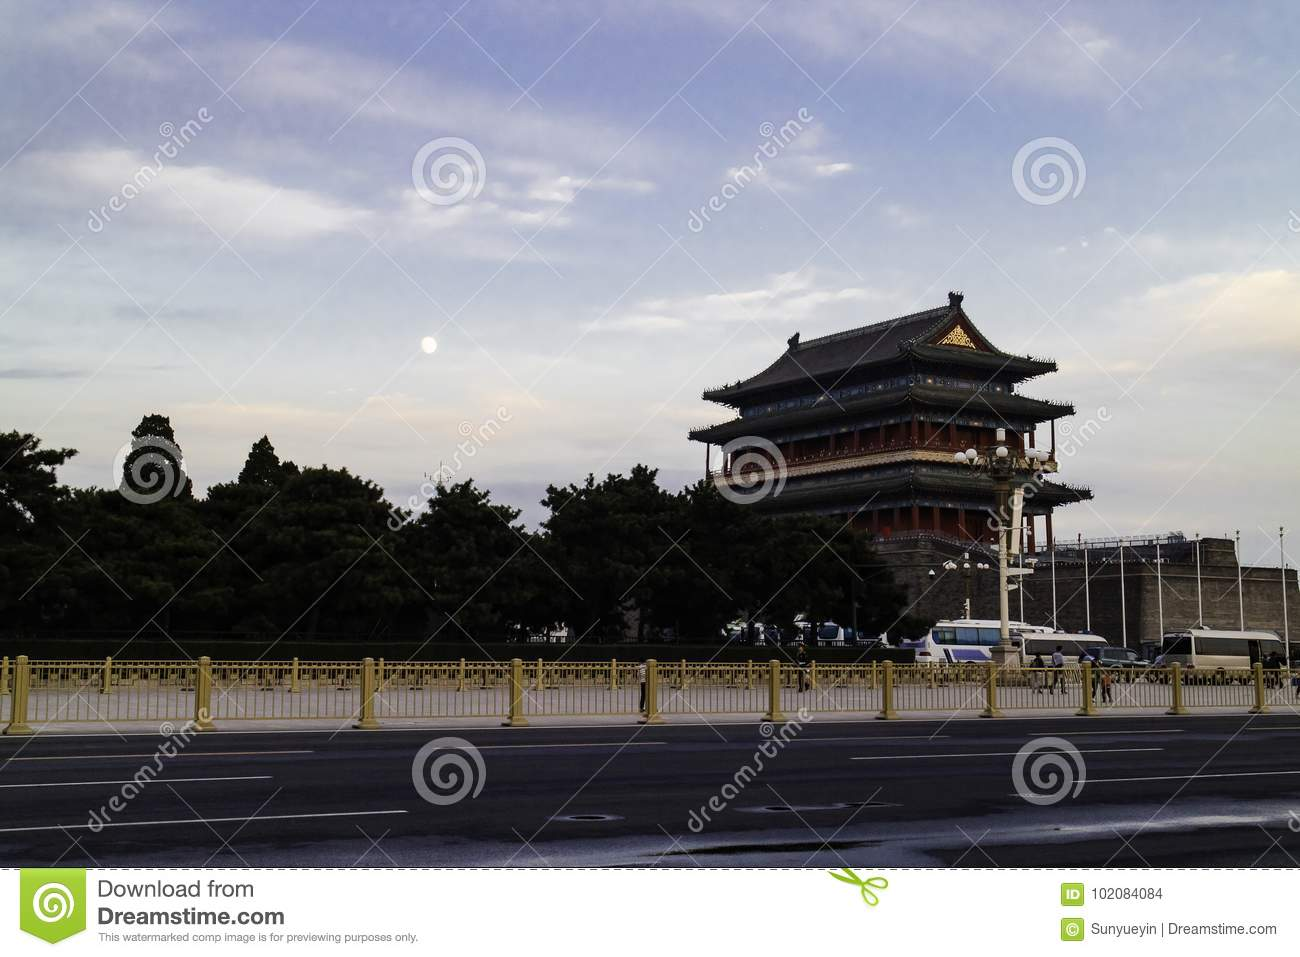 The moon on the Zhengyang Gate